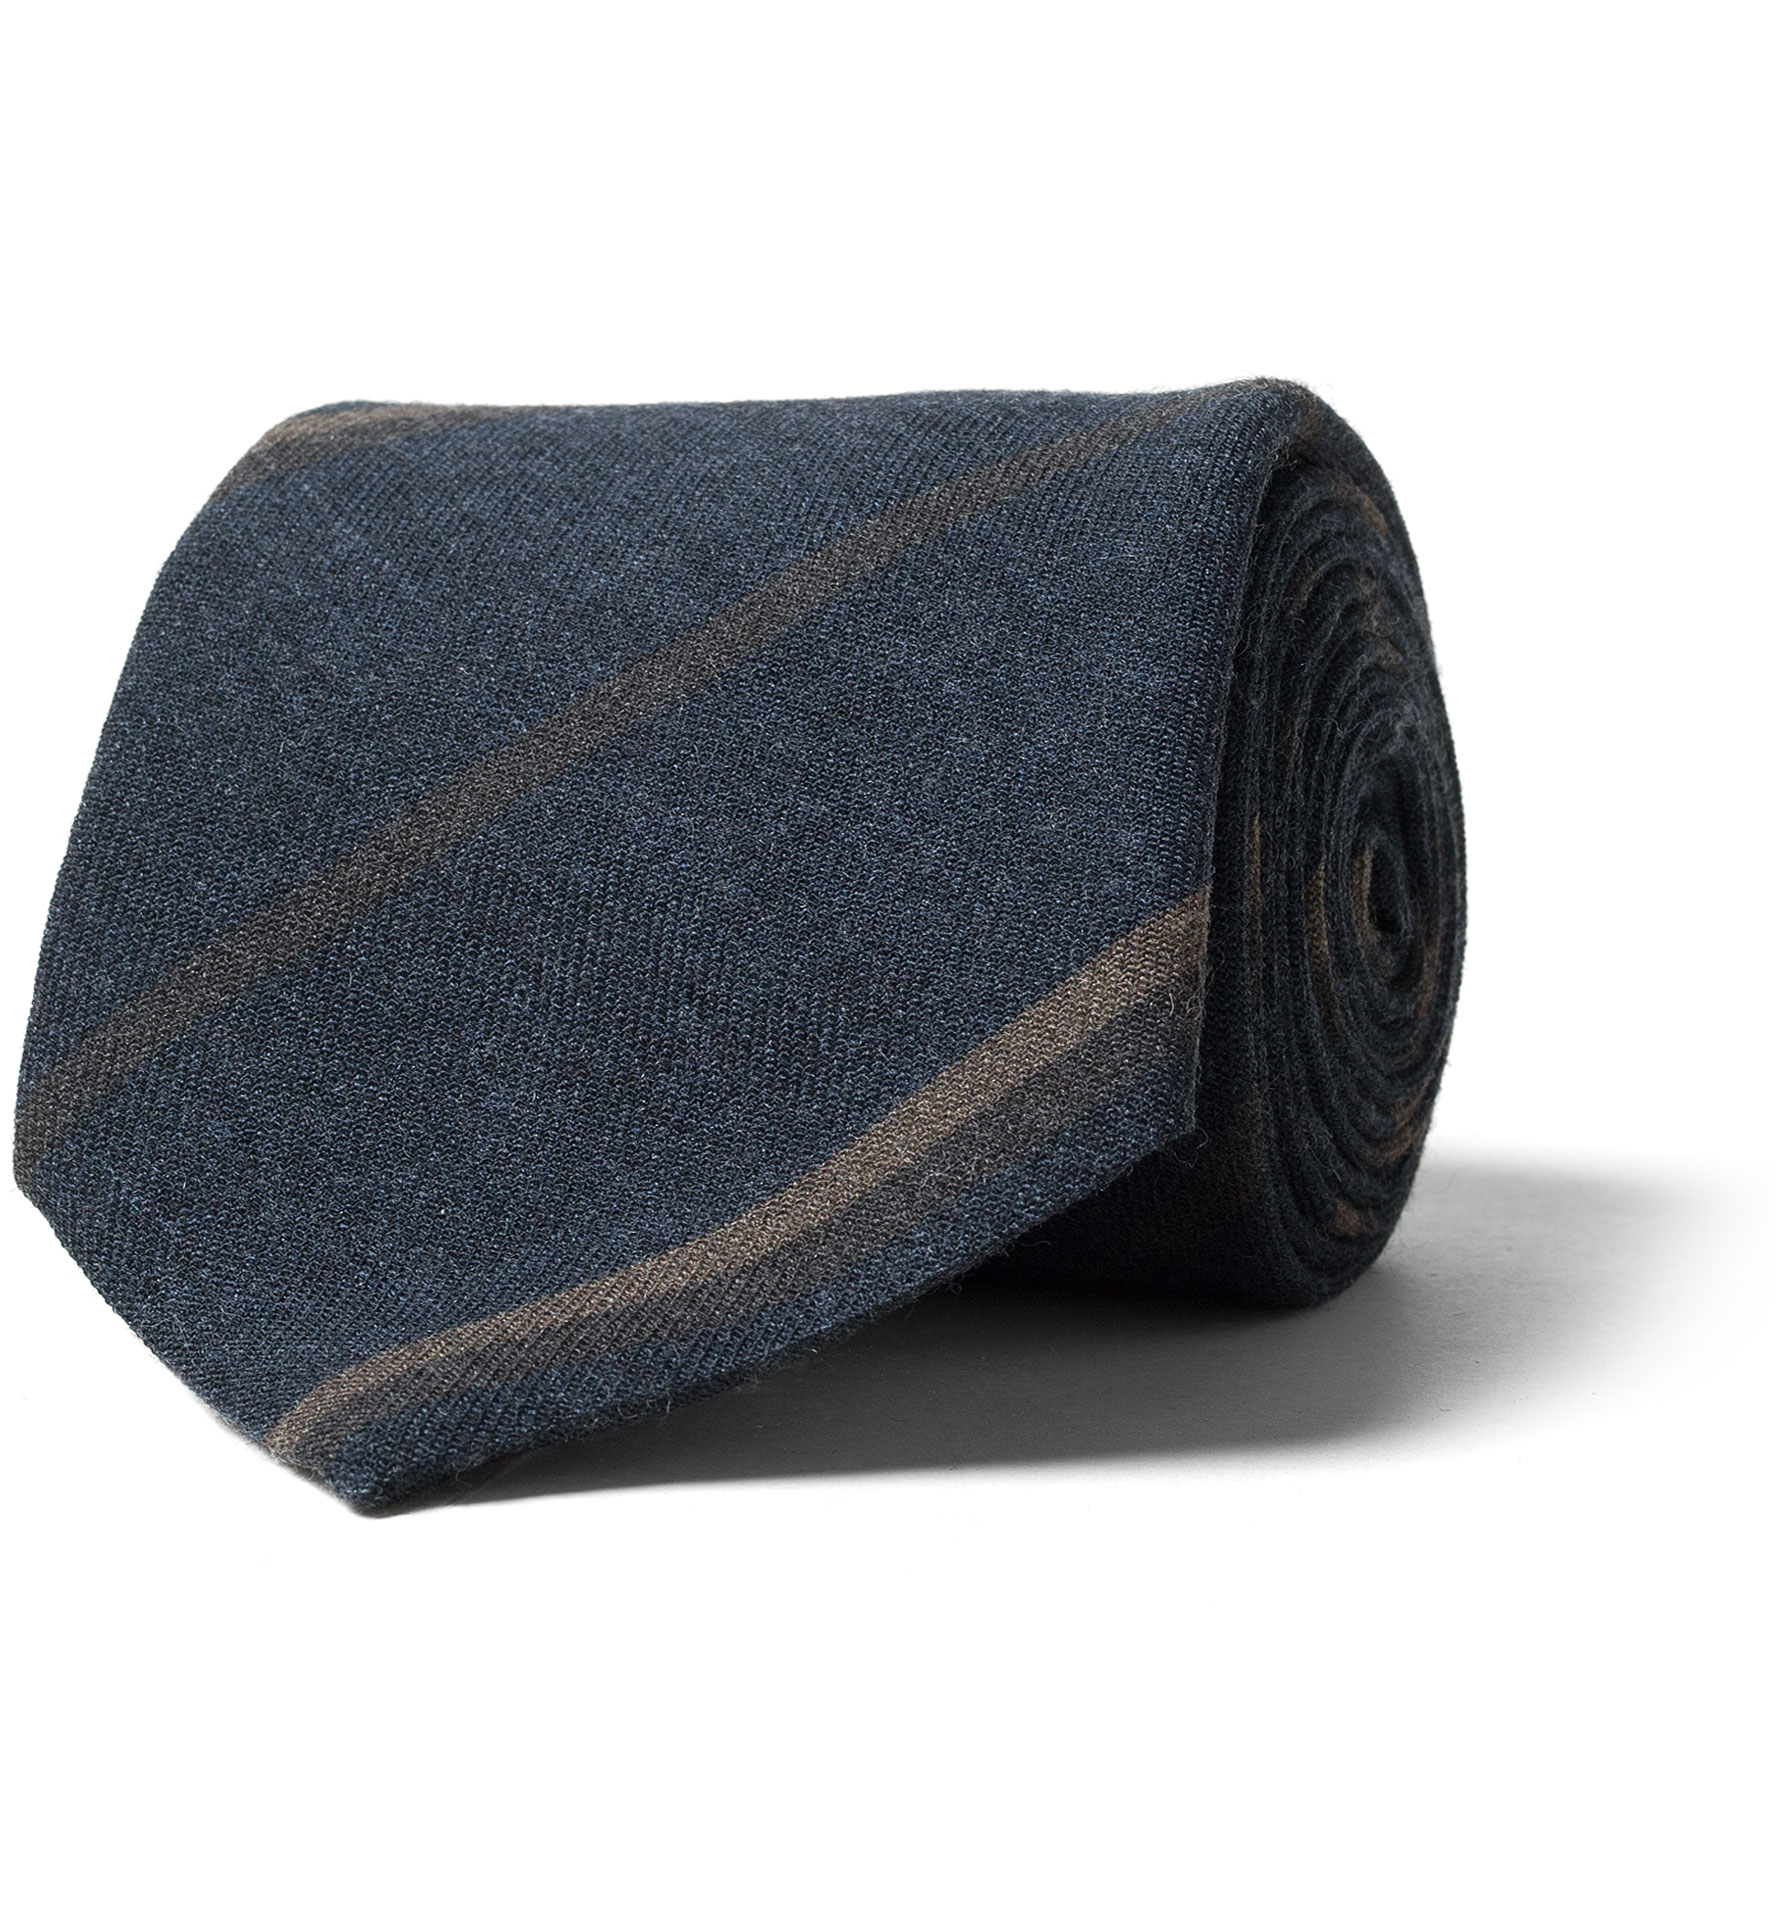 Zoom Image of Navy and Brown Striped Wool Tie